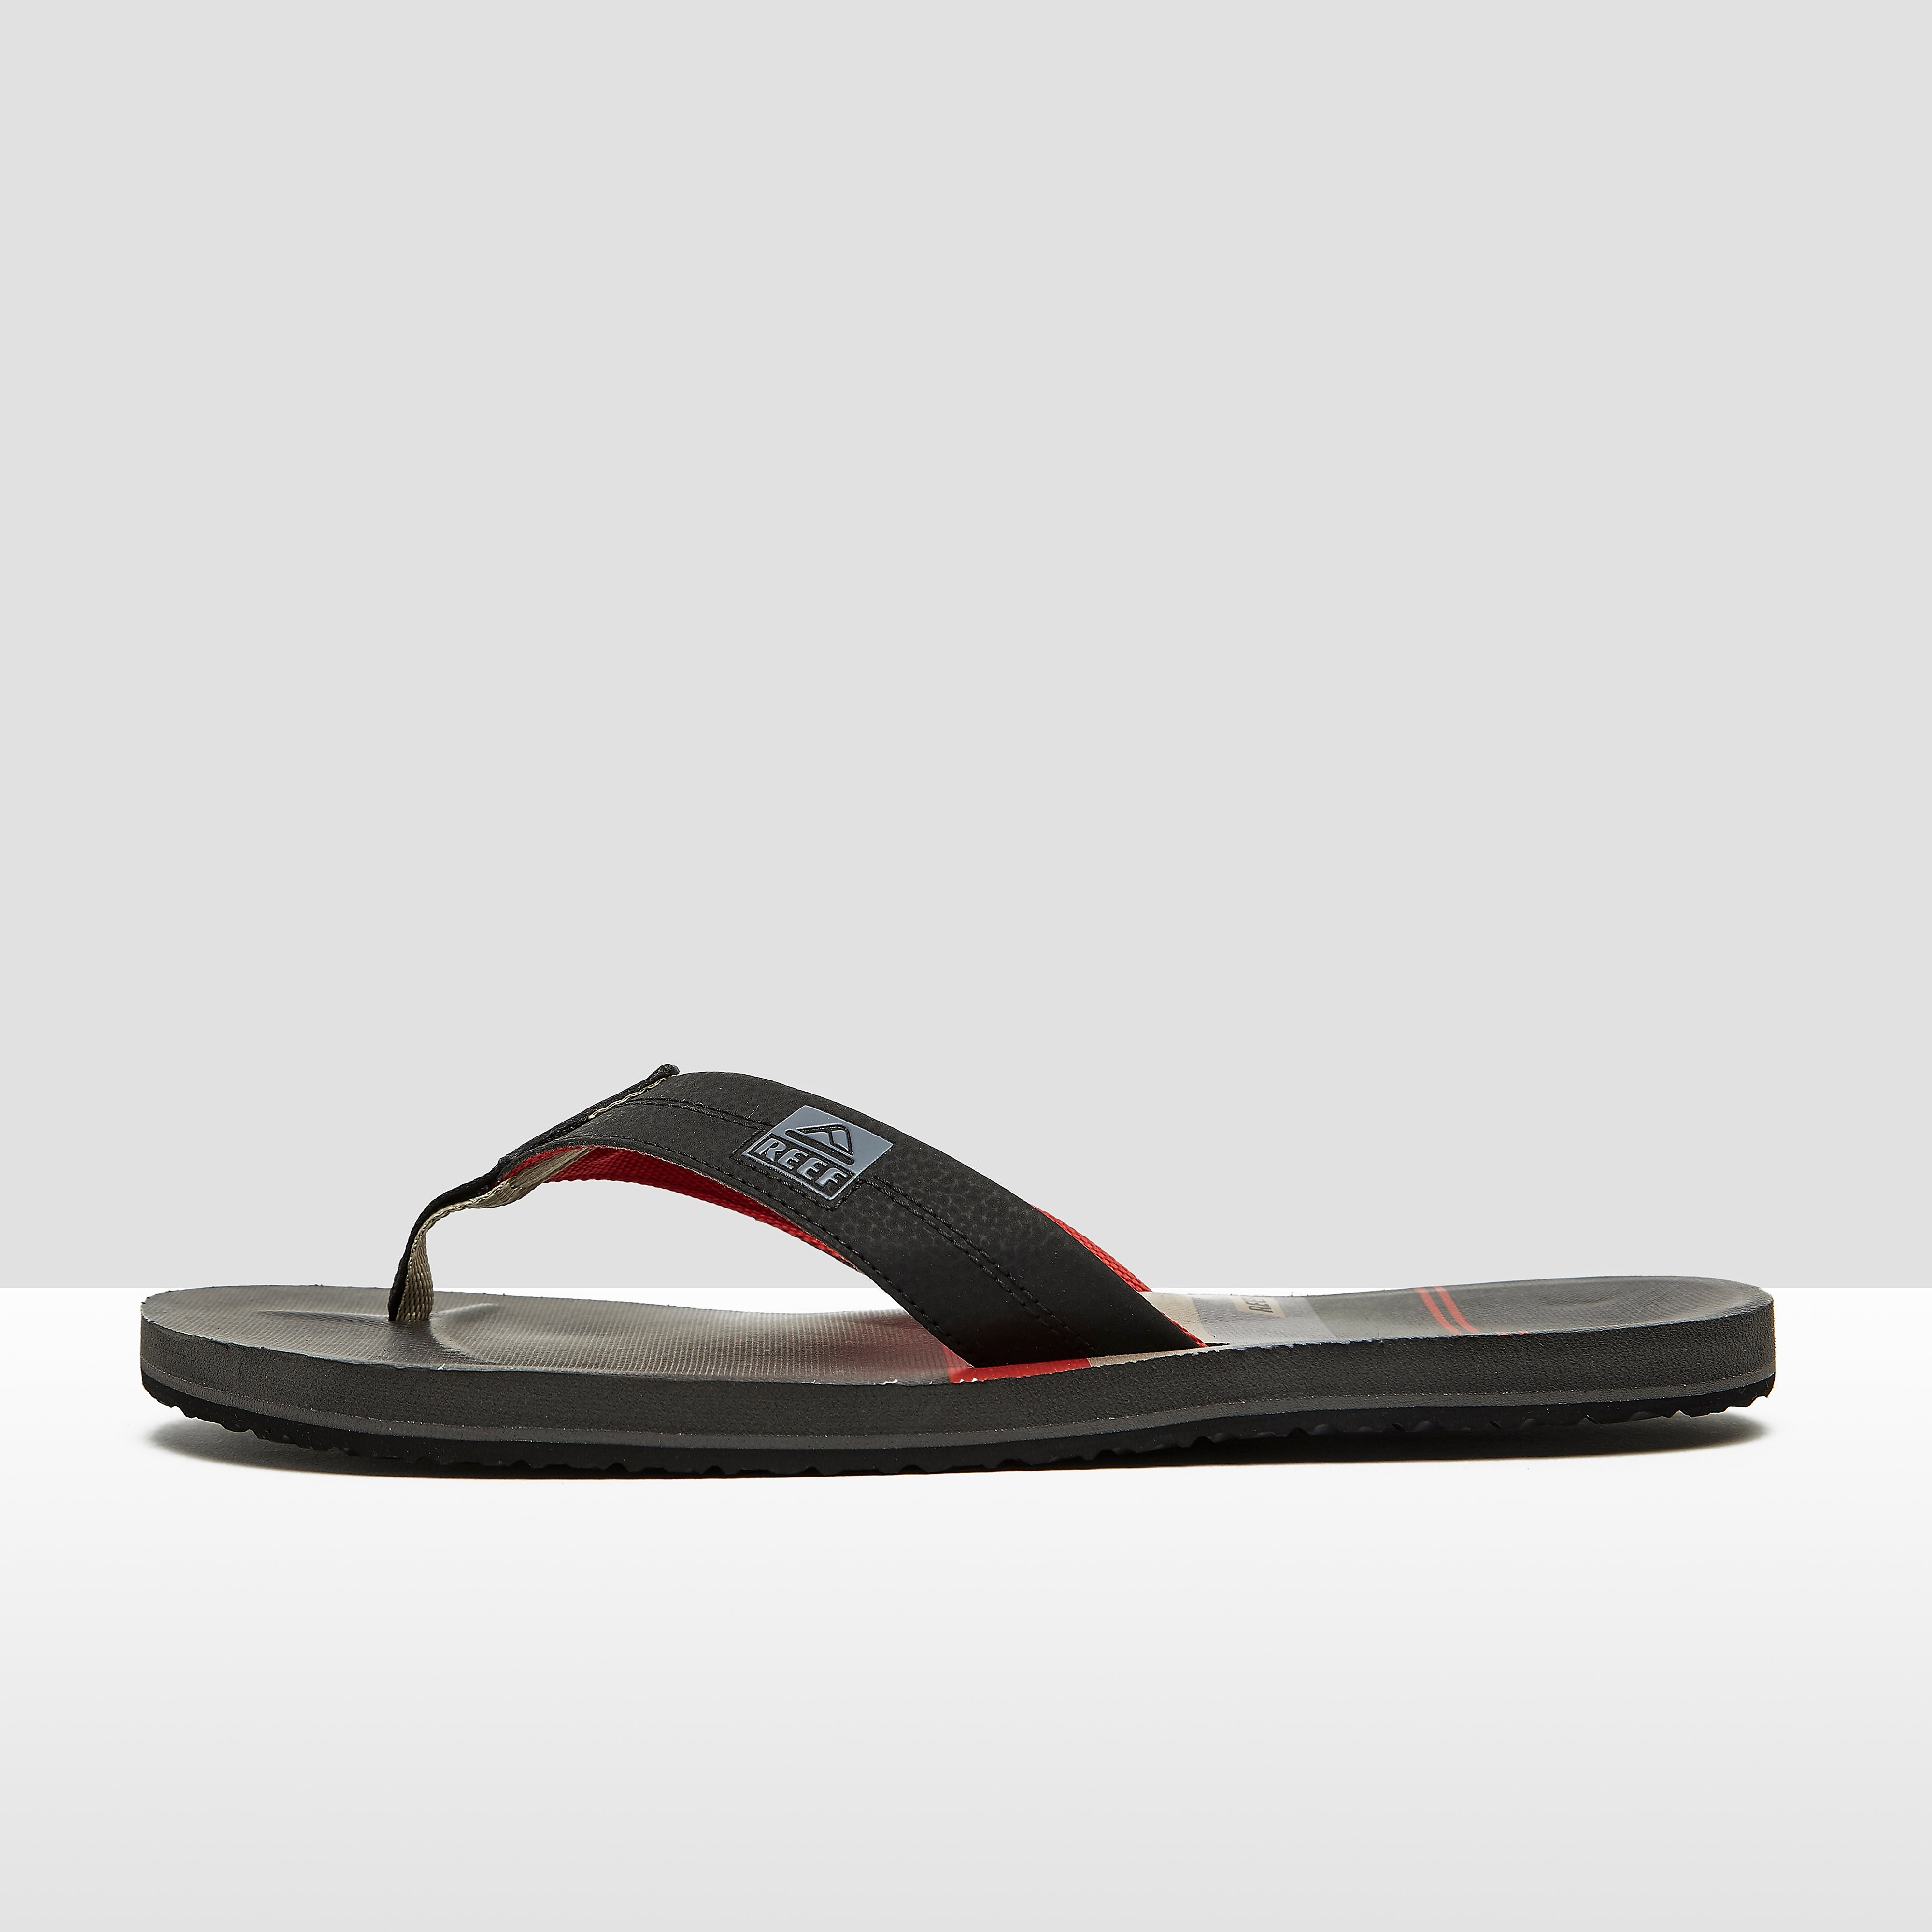 REEF PRINTS SLIPPERS ZWART/ROOD HEREN